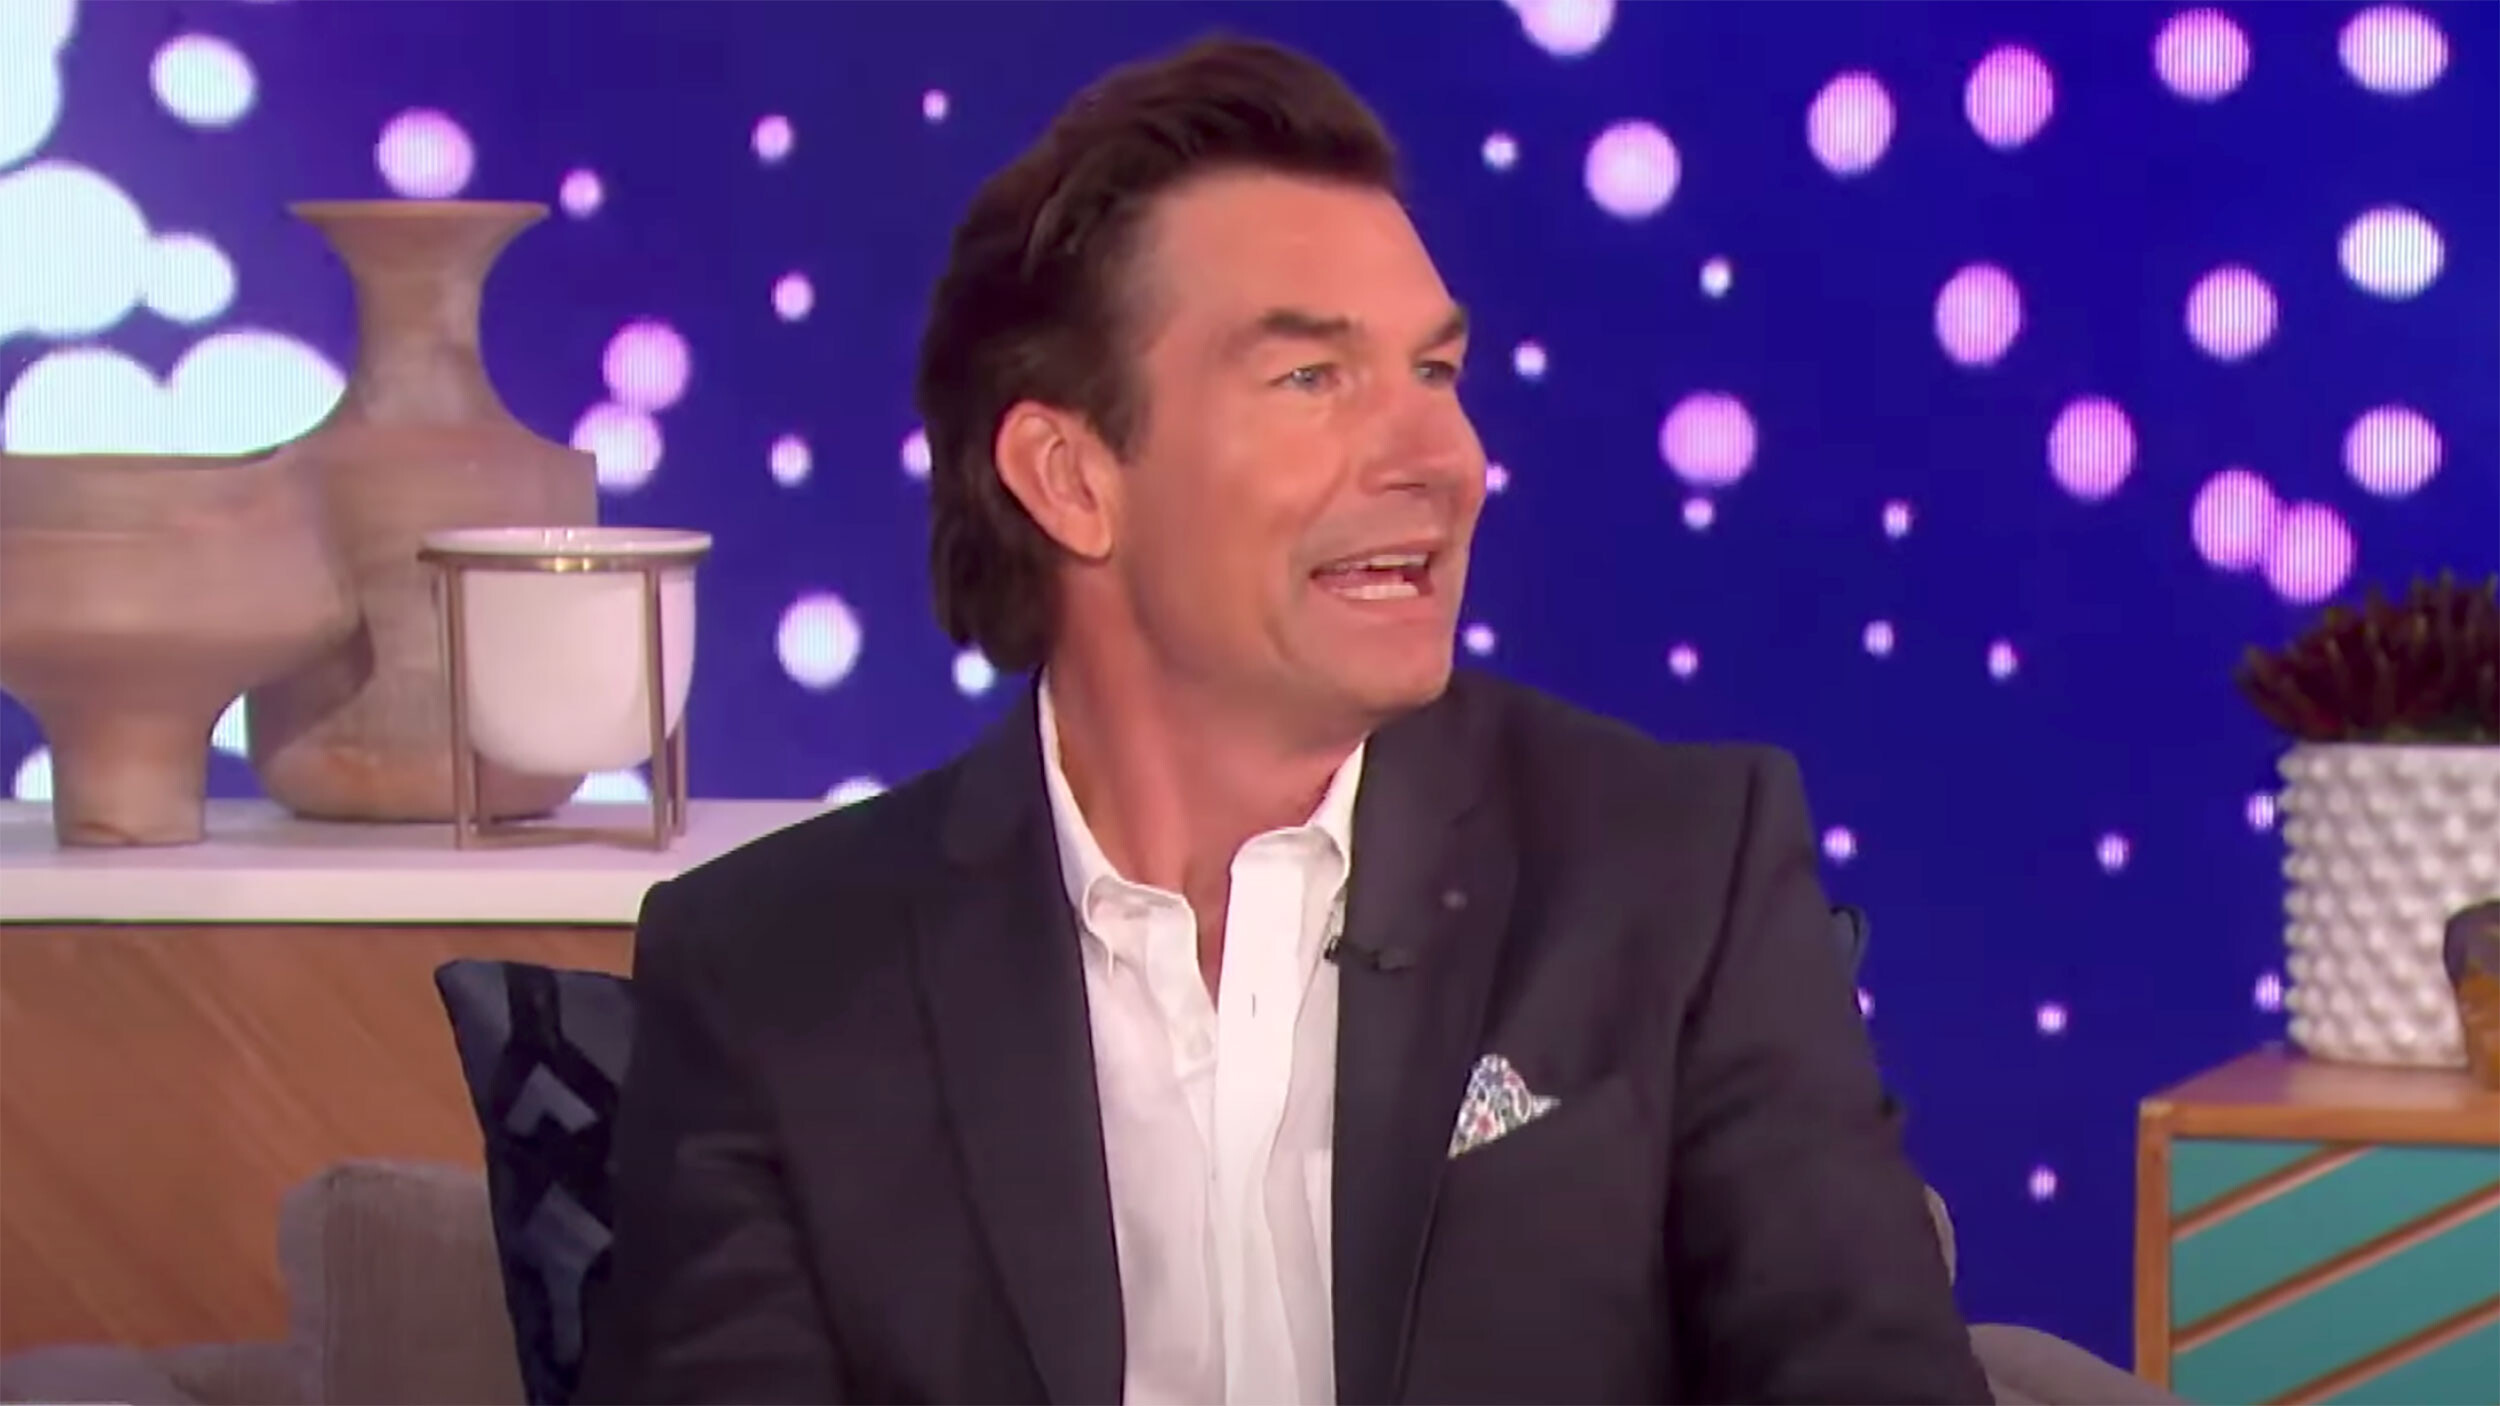 Jerry O'Connell replaces Sharon Osbourne and becomes first male co-host on 'The Talk'